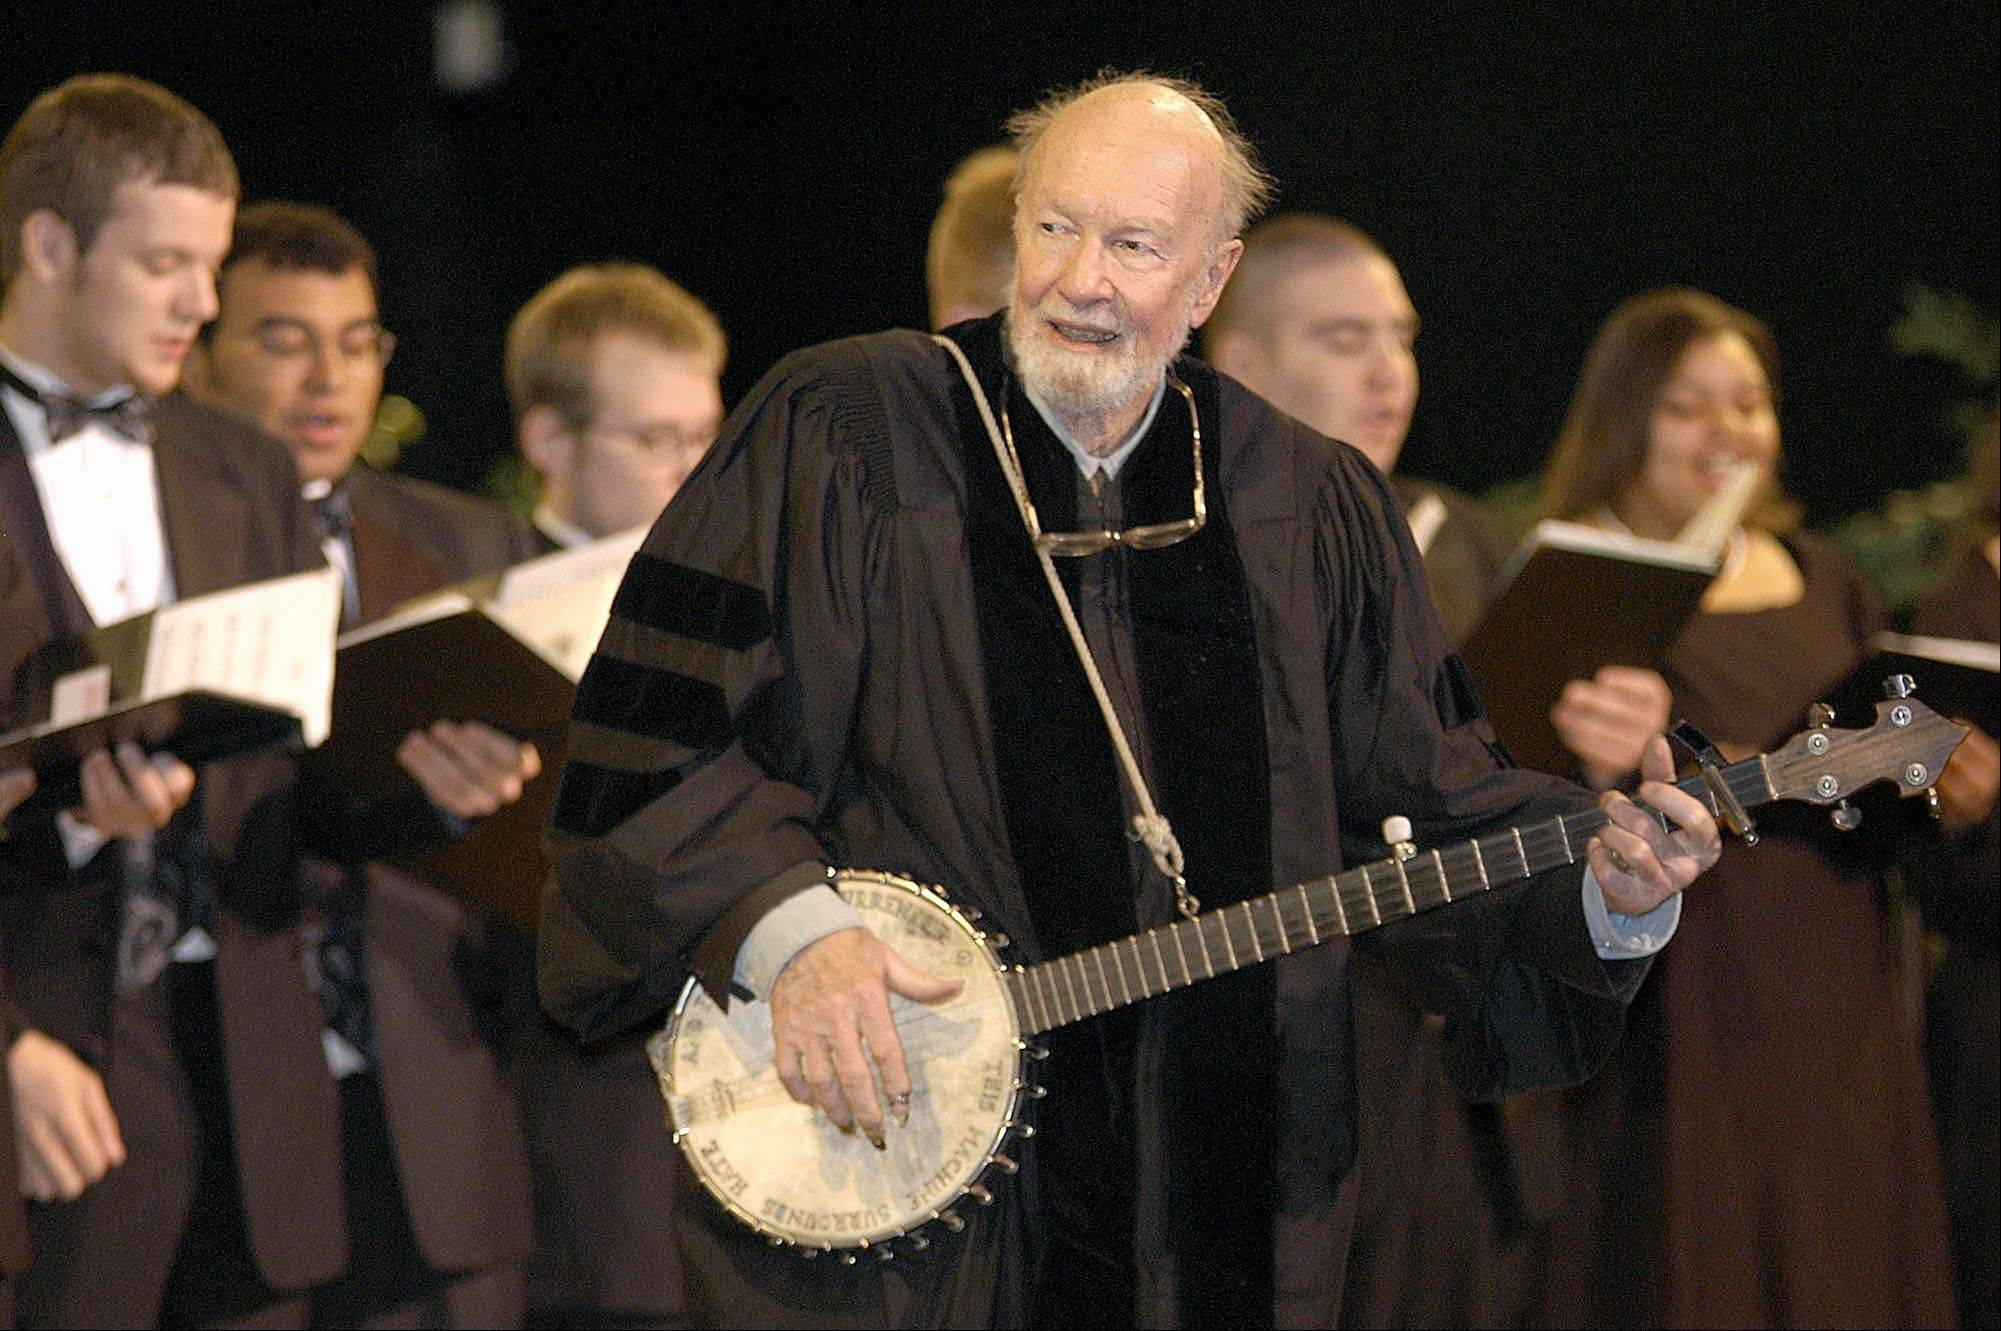 Folk singer Pete Seeger performed �When the Saints Go Marching In� with the Saint Rose Chamber Singers during commencement ceremonies for the College of St. Rose at the Empire State Plaza in Albany, N.Y. in 2003. The American troubadour, folk singer and activist died Monday at age 94.